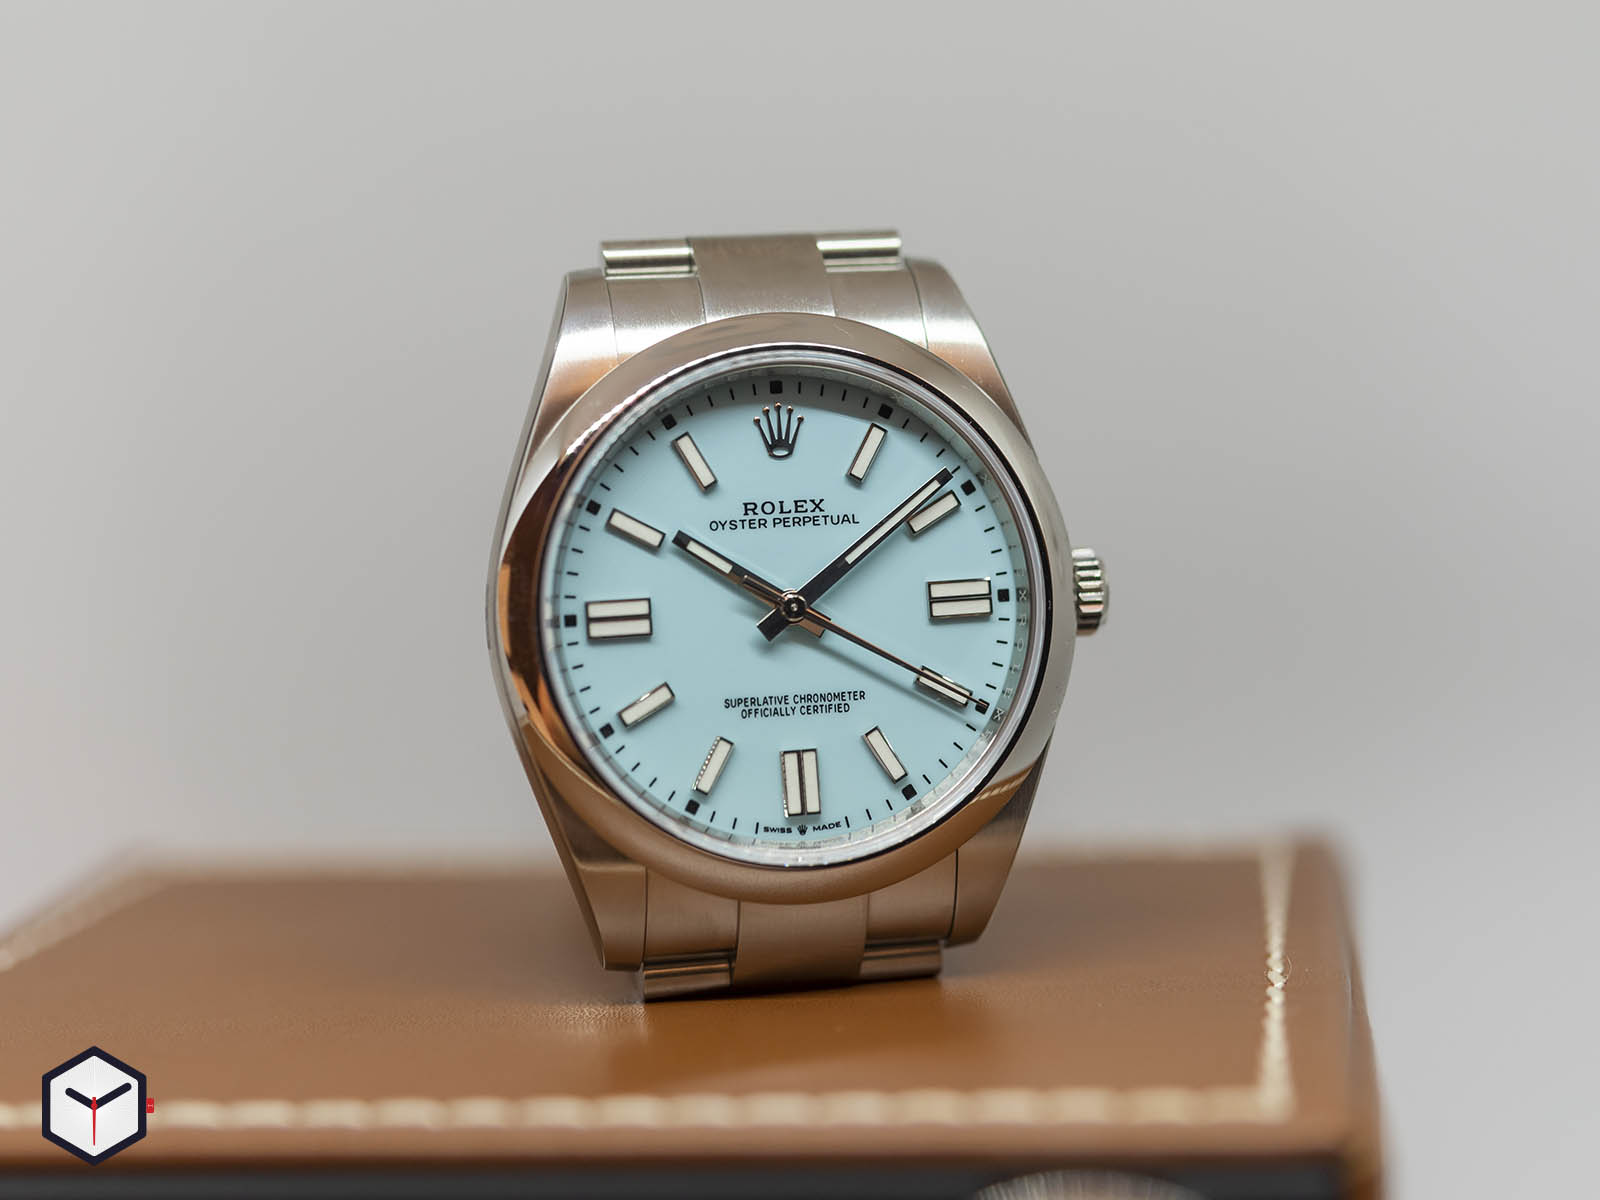 rolex-oyster-perpetual-36mm-2020-4.jpg